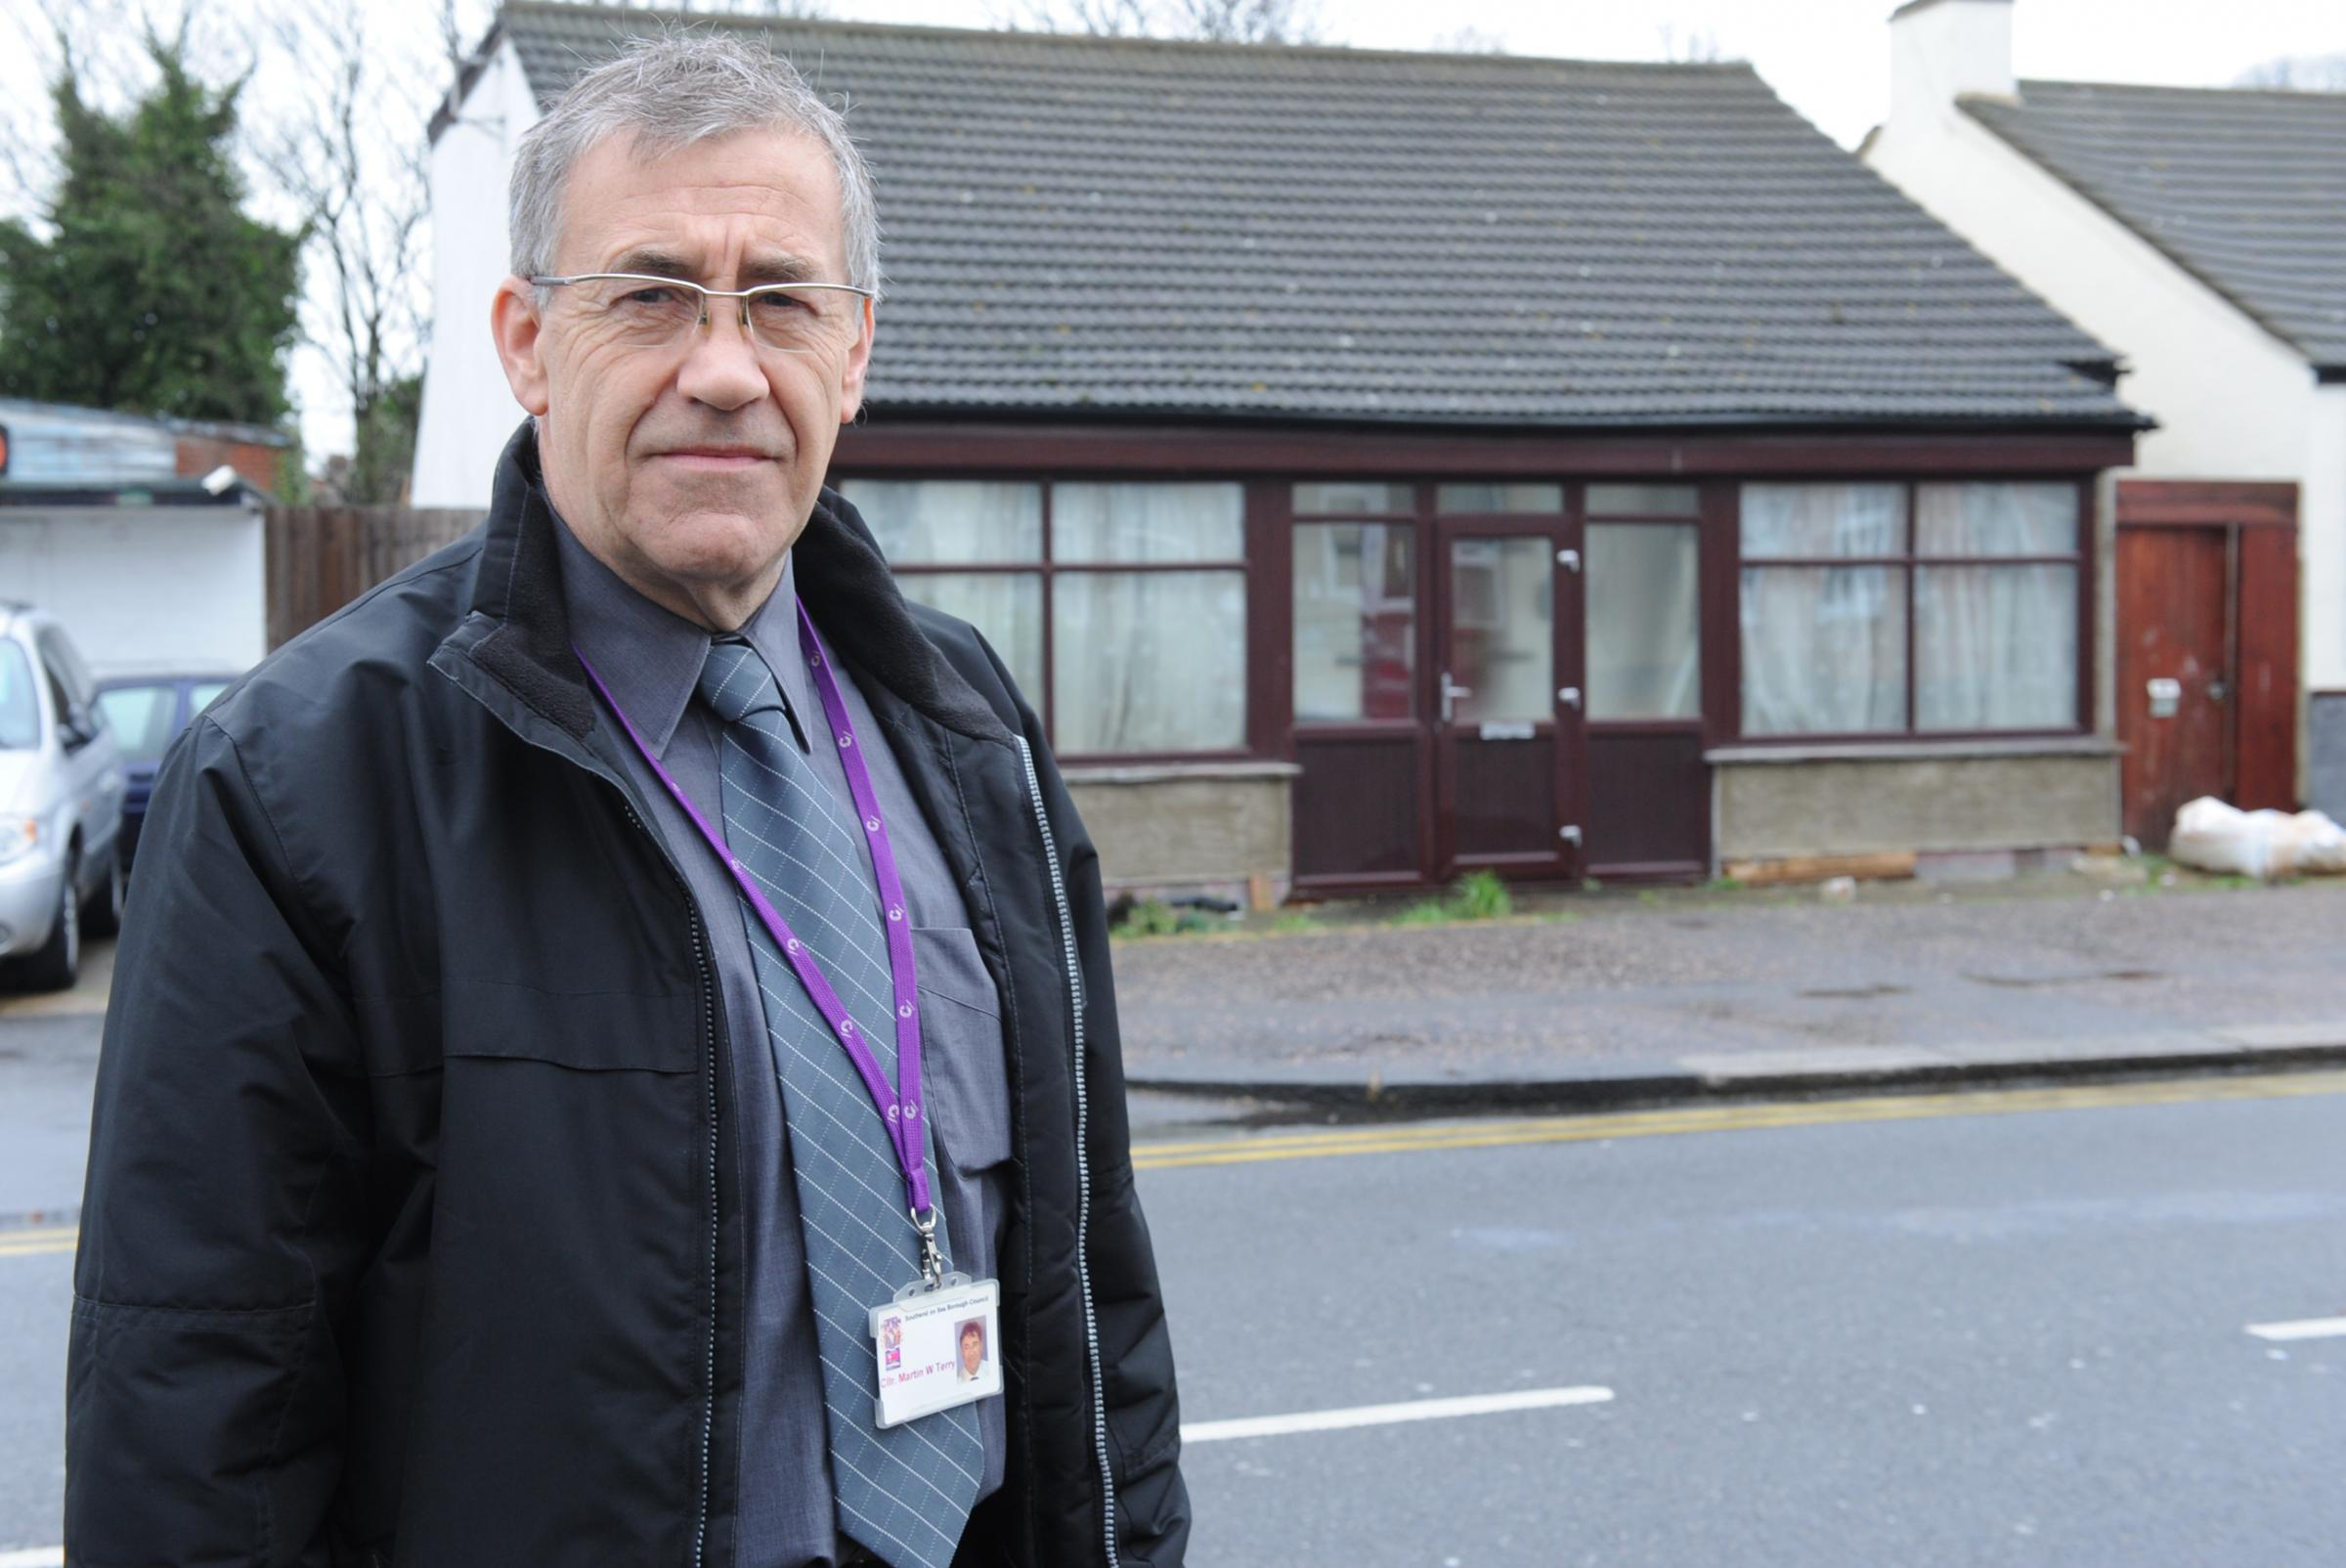 Westborough councillor Martin Terry outside the bungalow